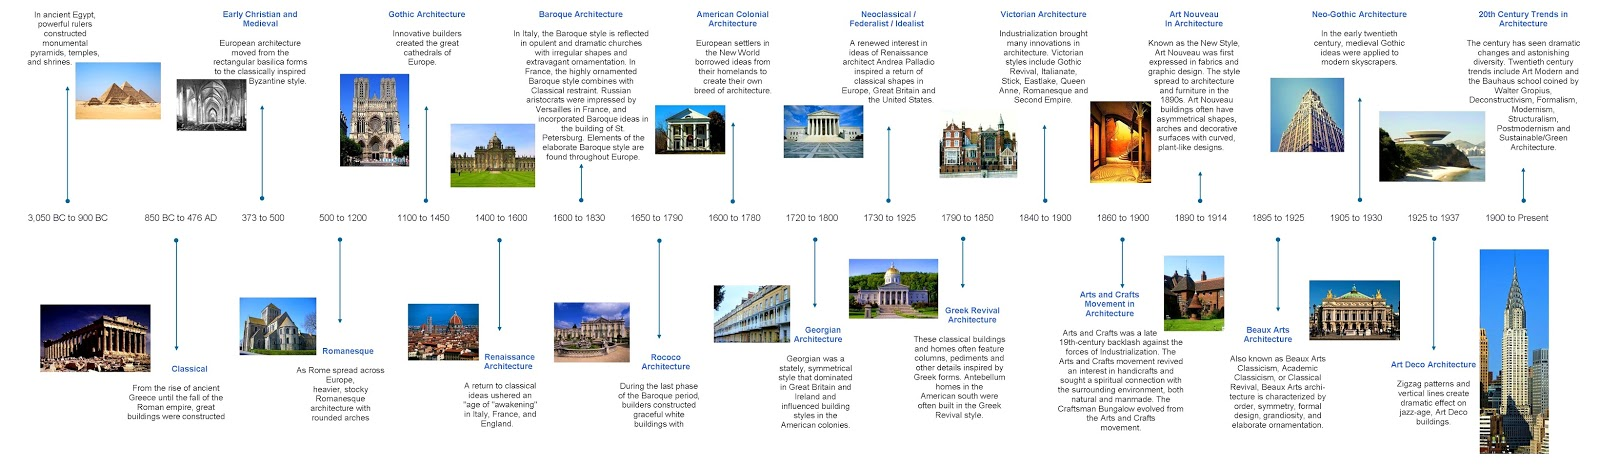 Architectural Design And History